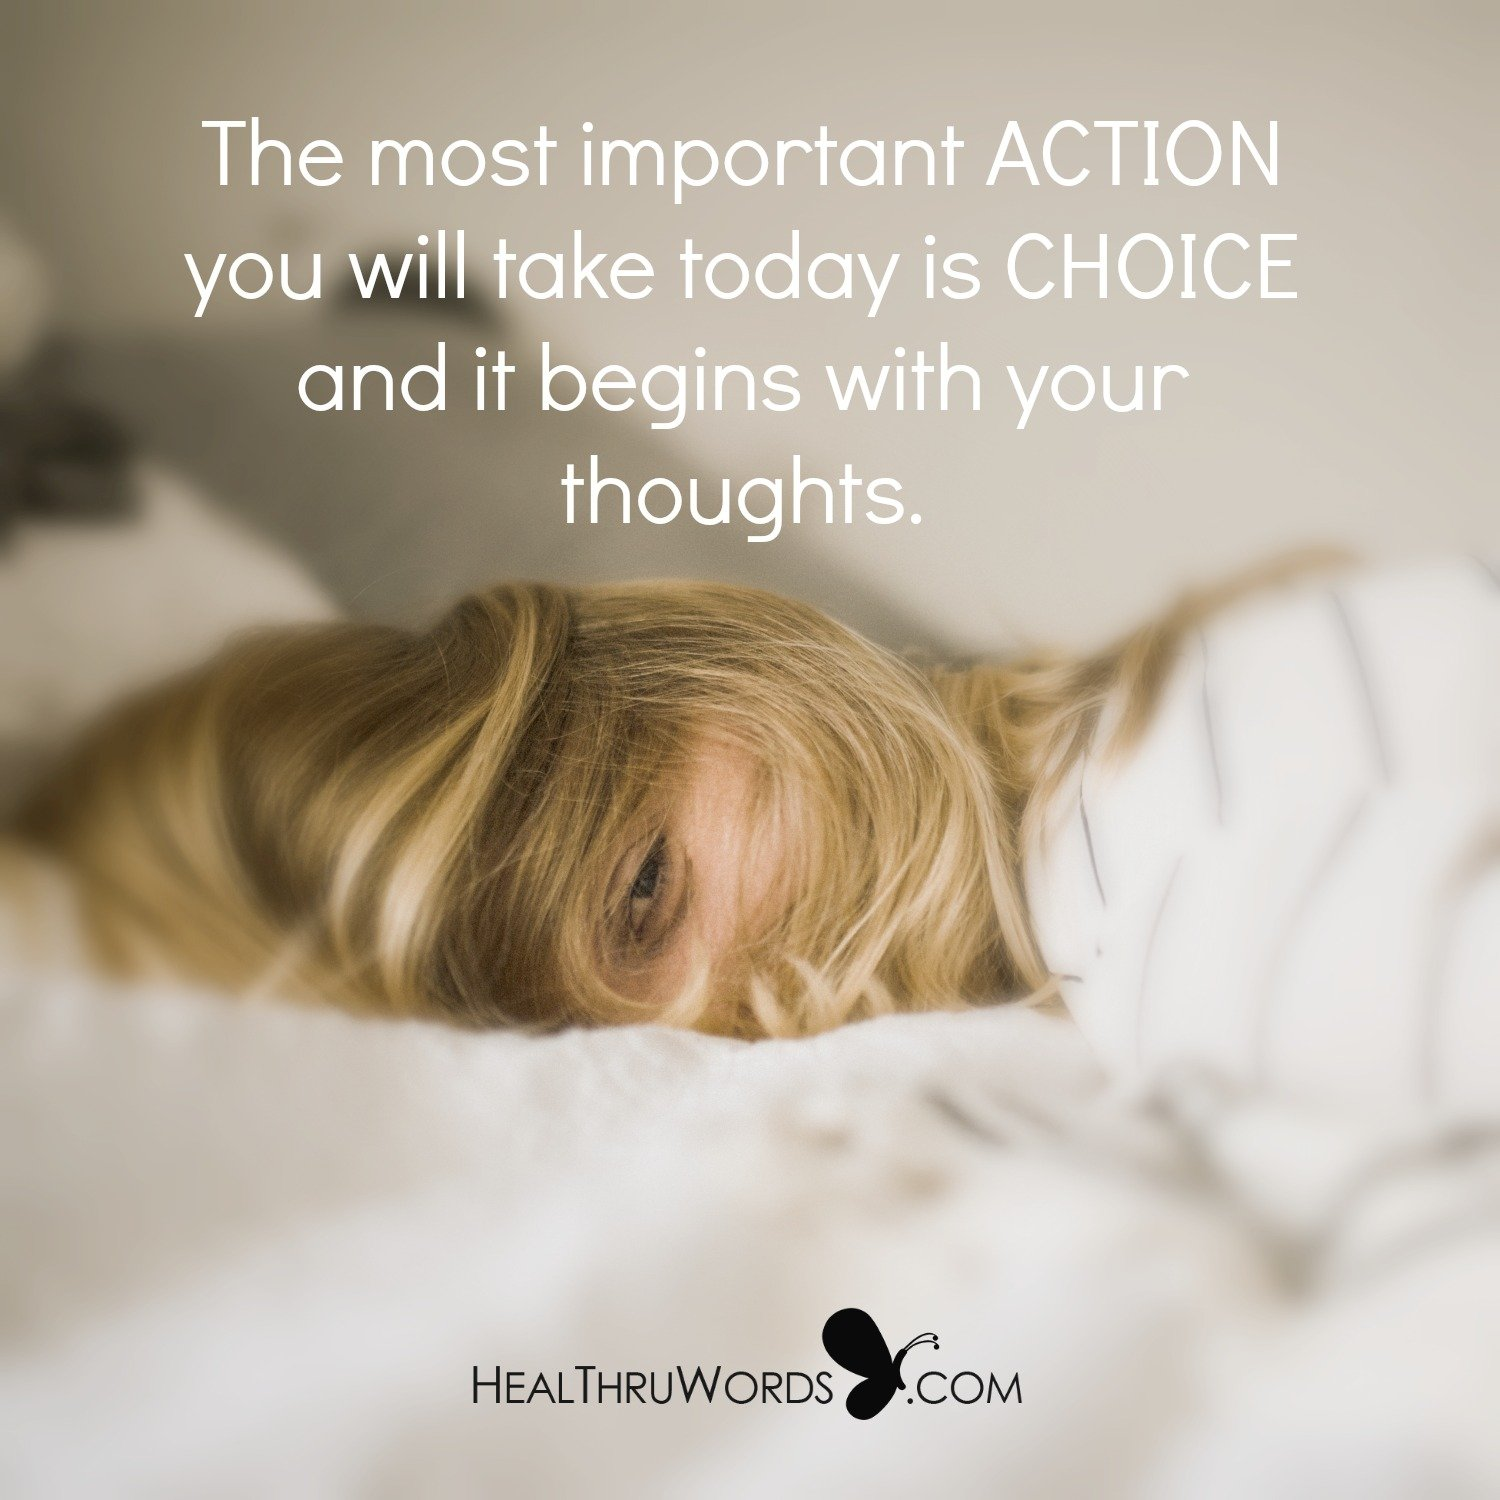 Inspirational Image: Thoughtful Action